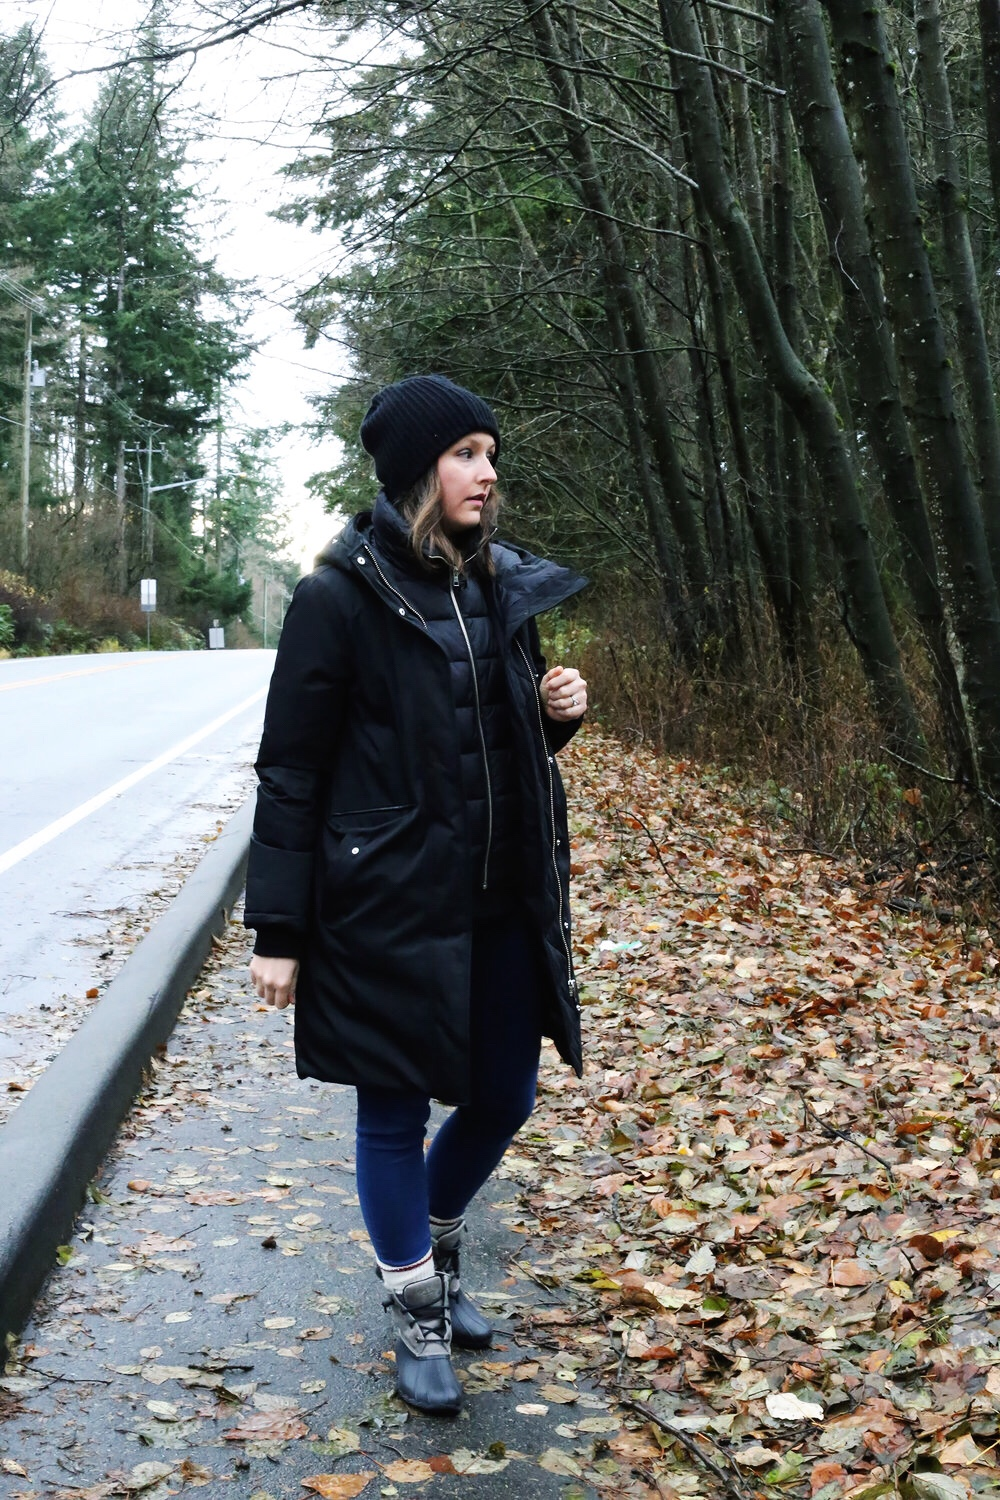 Winter street style: sio and kyo black parka, black toque, Sperry duck boots, skinny jeans, and Roots wool socks.